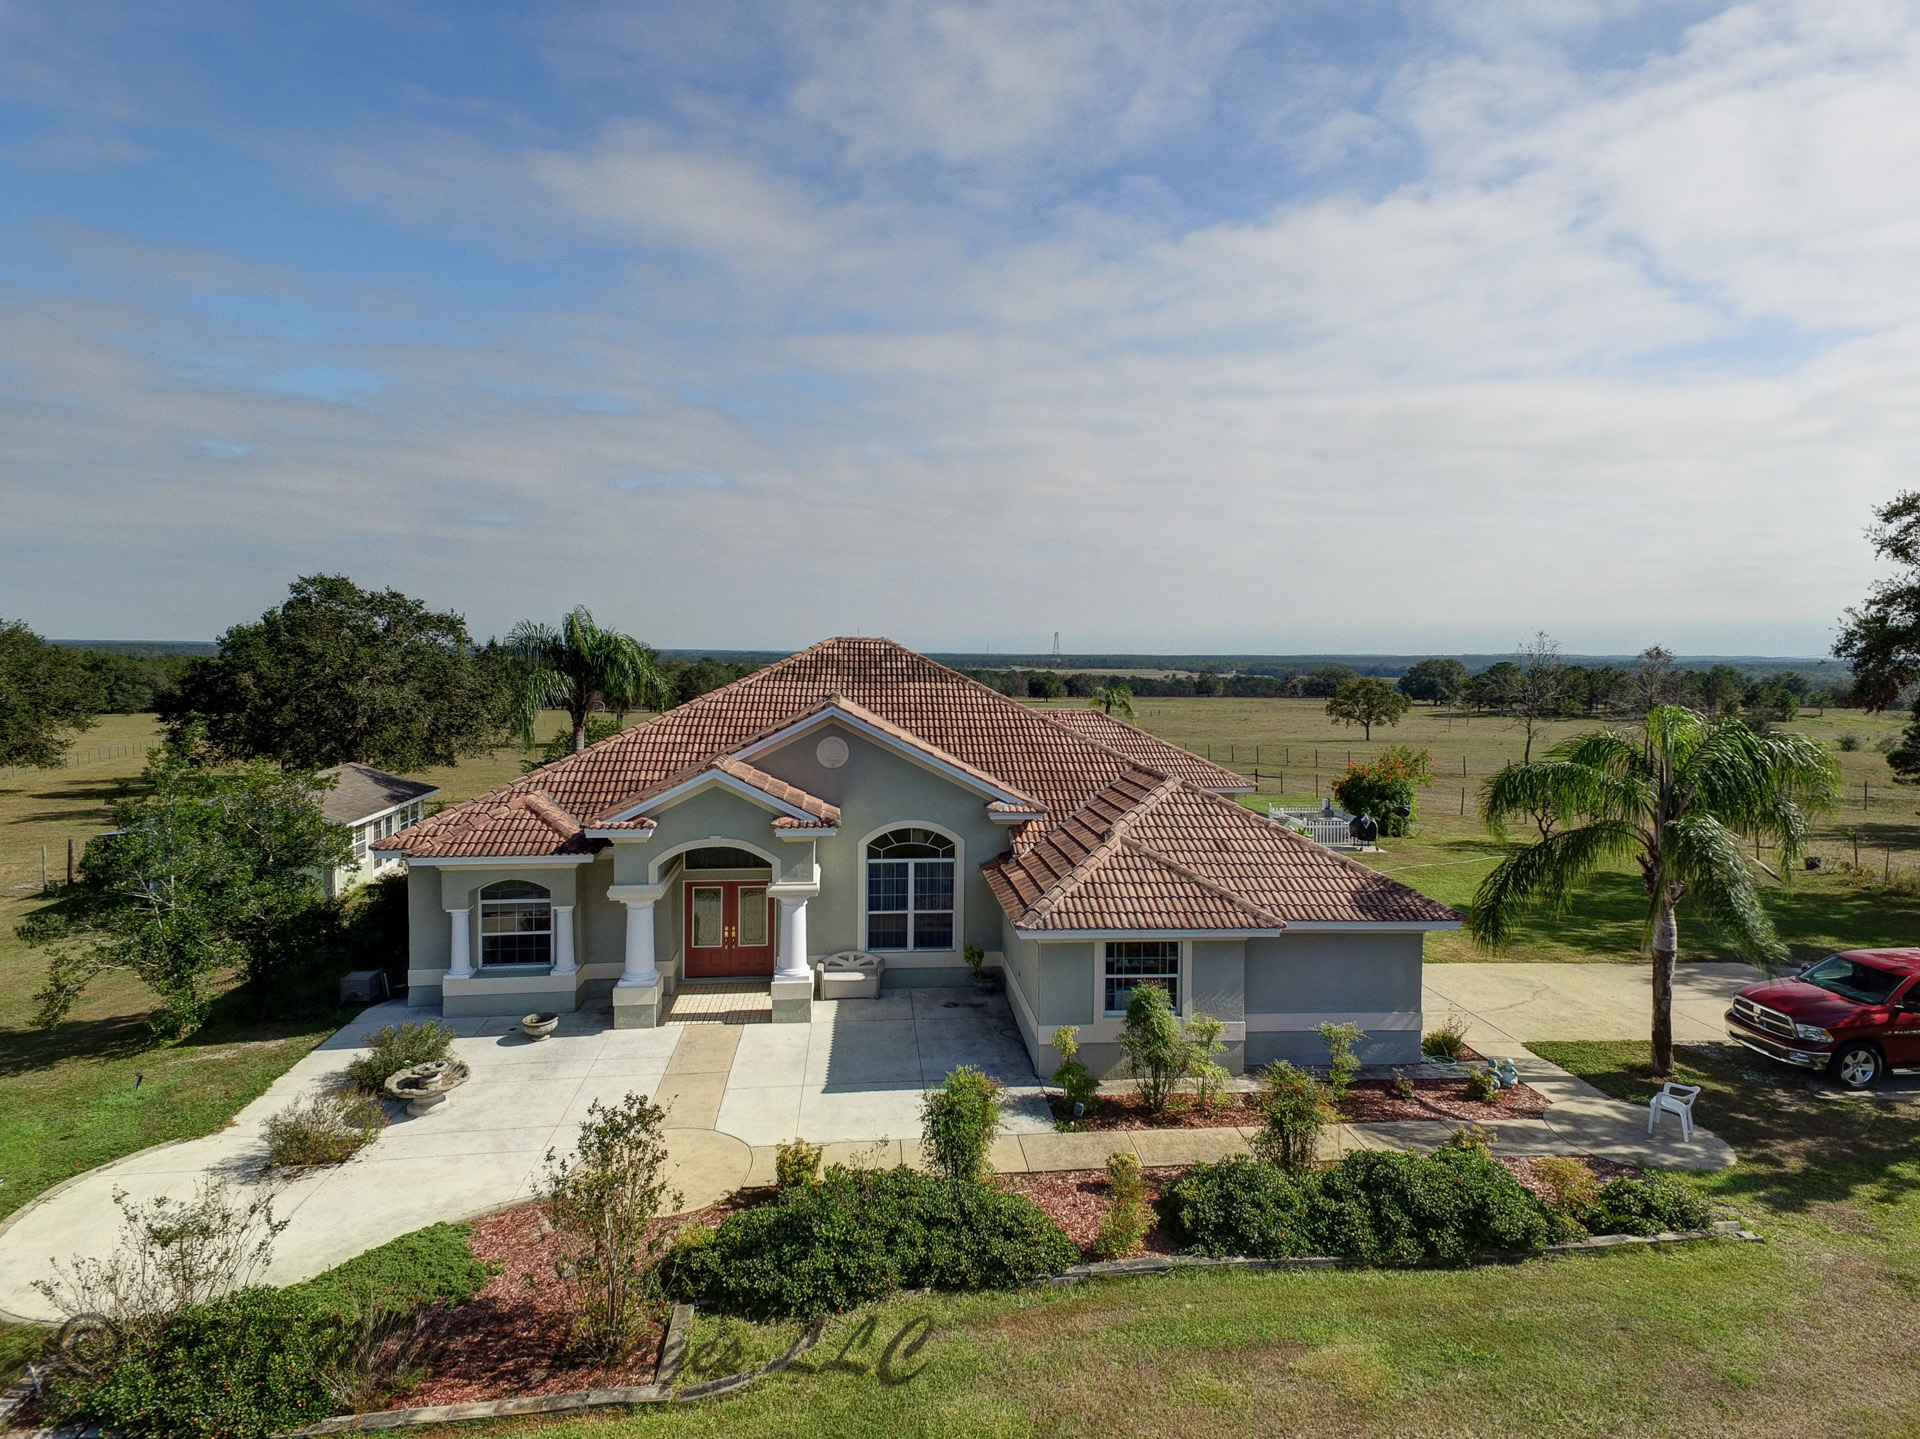 Aerial Photo of the Estate Home and Farm for Sale in Inverness, Citrus County